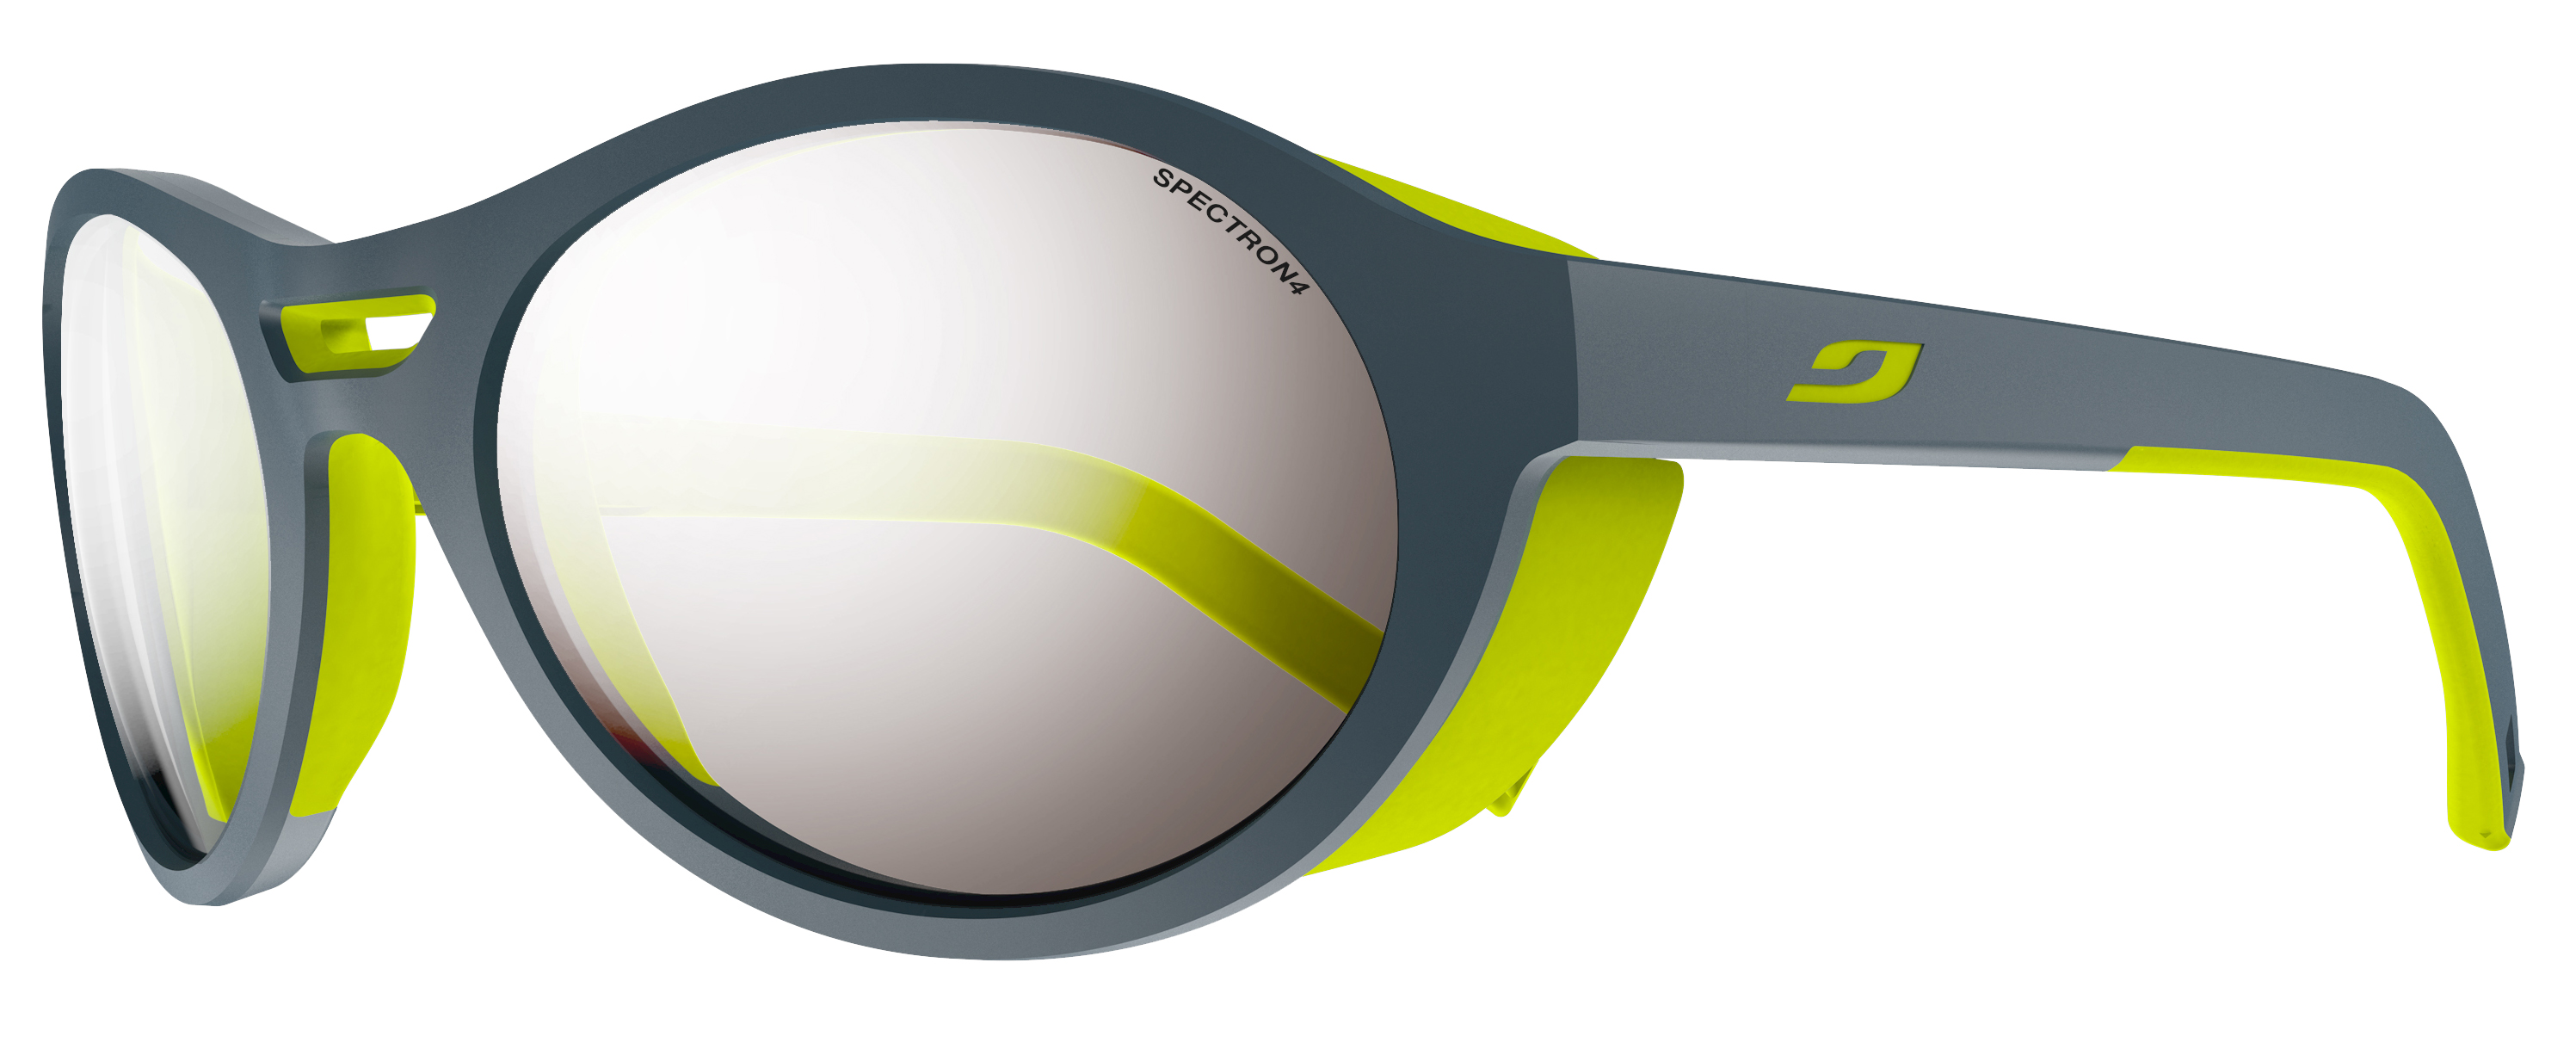 8be96d441b Julbo All products